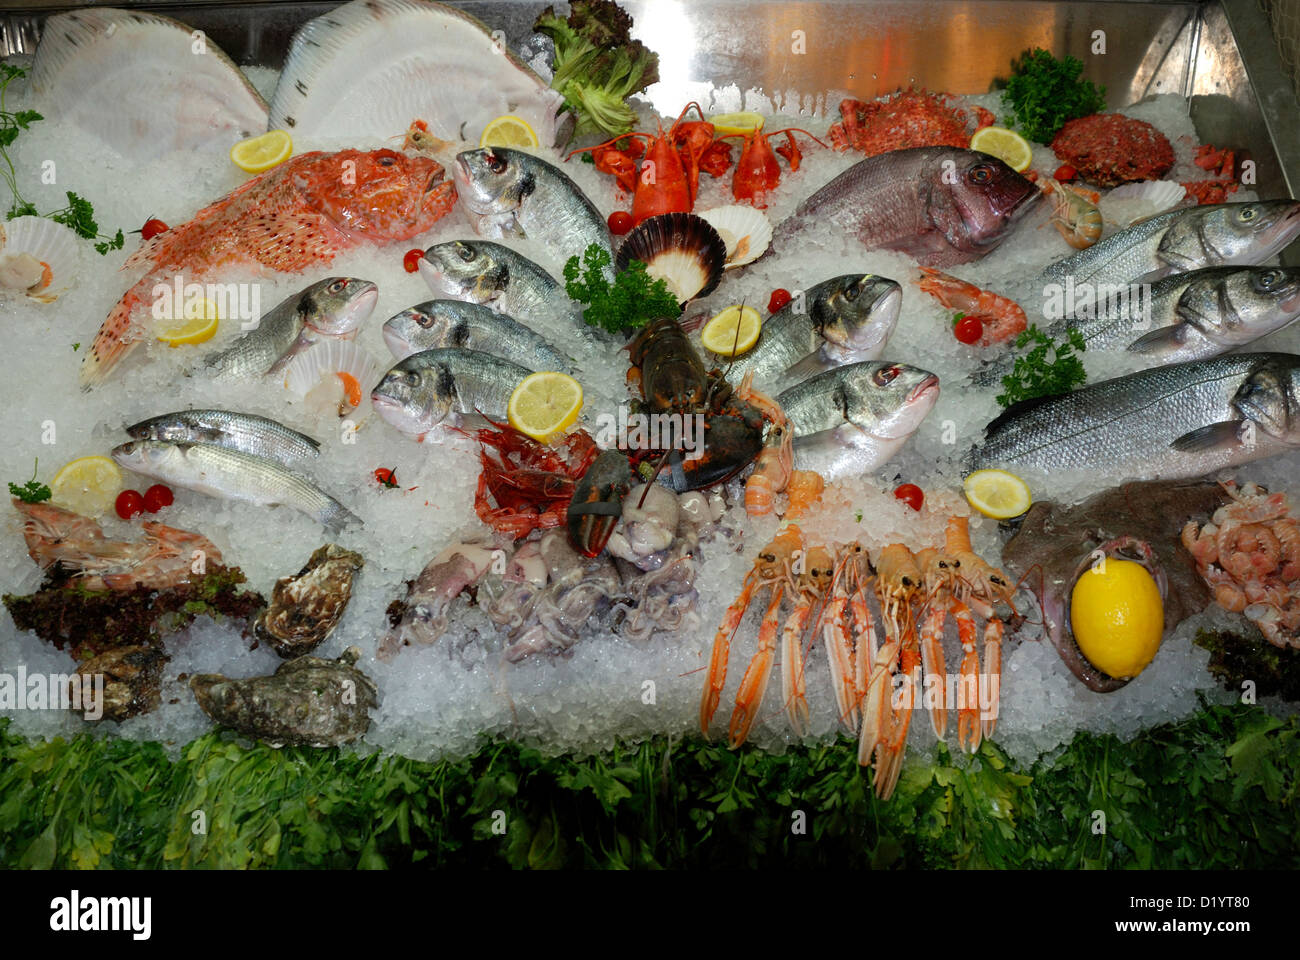 Seafood from the Adriatic Sea on a market in Venice. - Stock Image